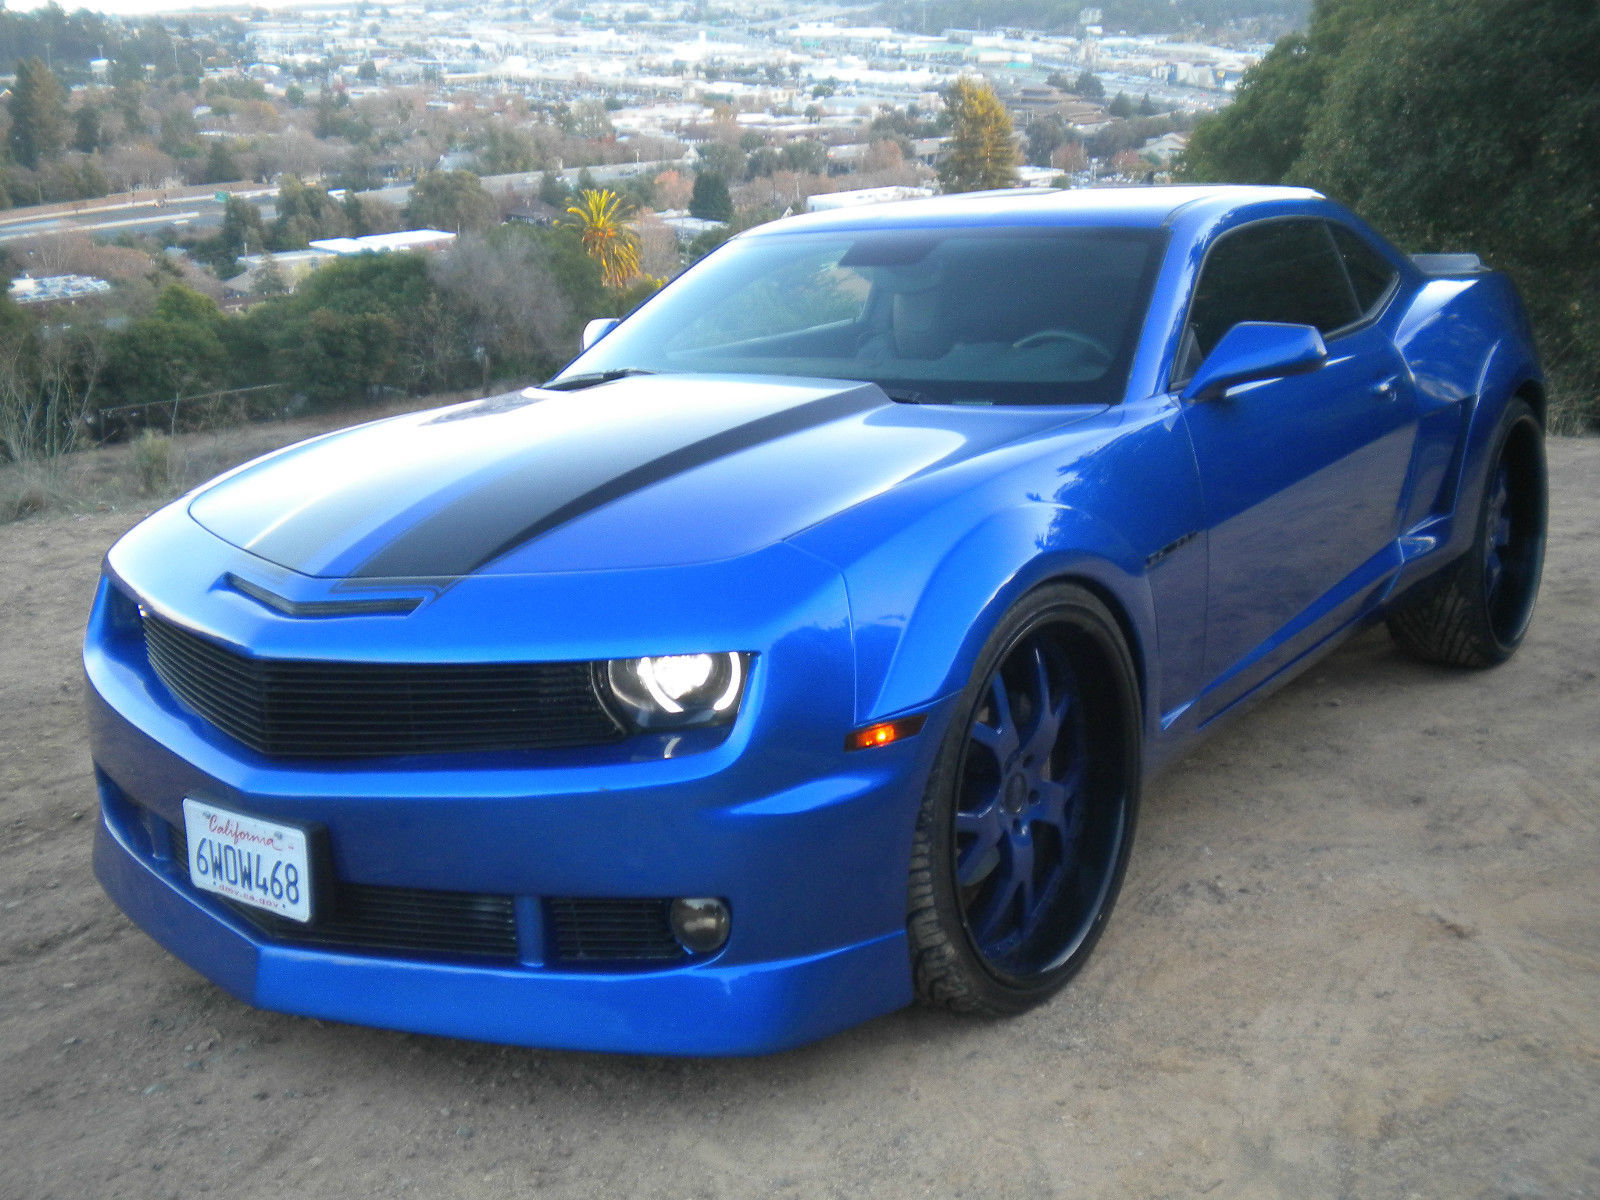 widebody camaro ss on asantis for sale friday rides. Black Bedroom Furniture Sets. Home Design Ideas